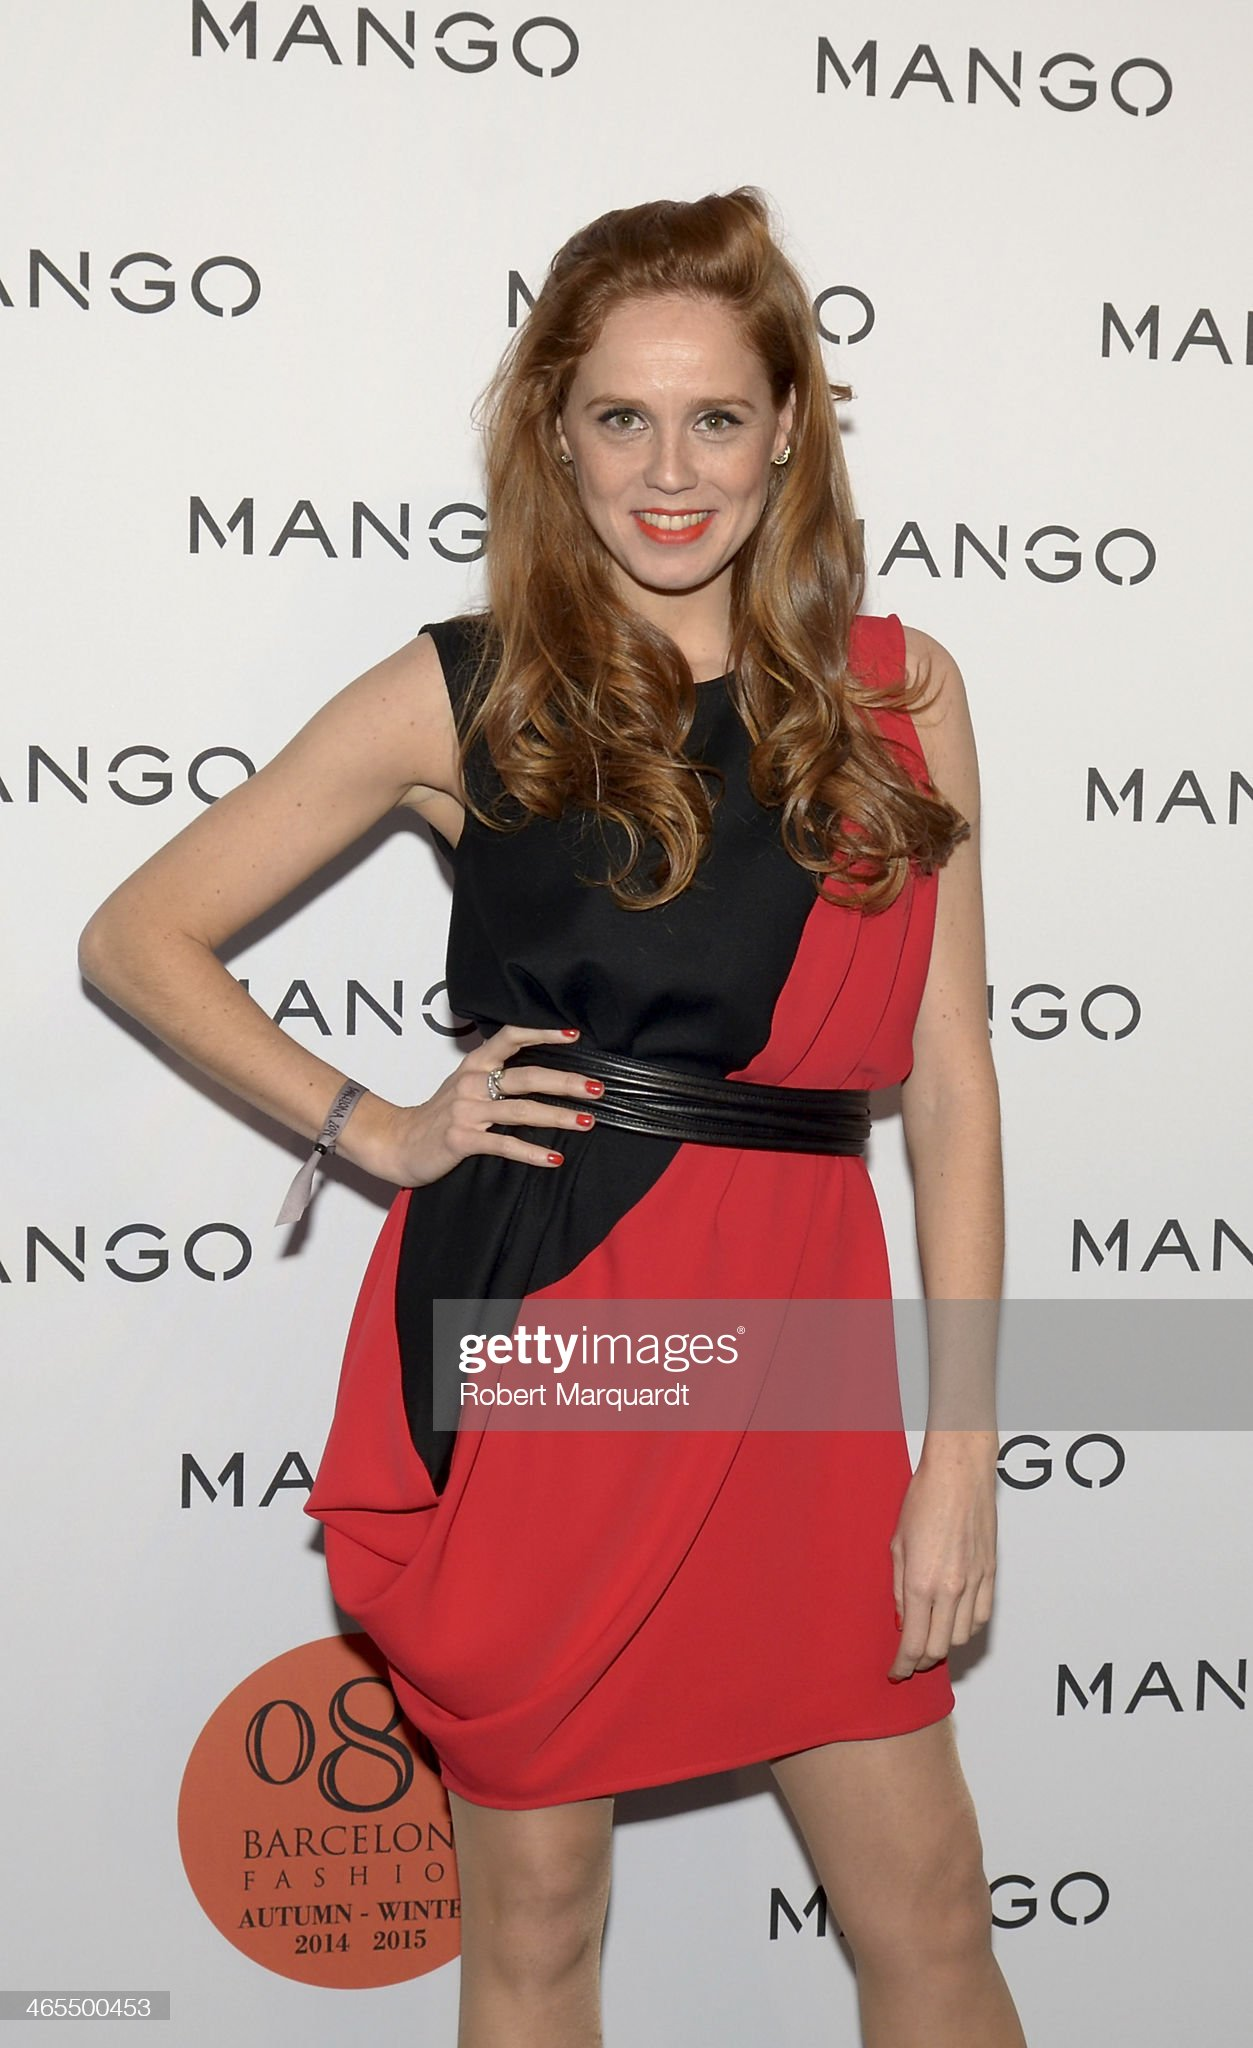 ¿Cuánto mide María Castro? - Altura Maria-castro-poses-during-a-photocall-for-the-mango-fashion-show-held-picture-id465500453?s=2048x2048